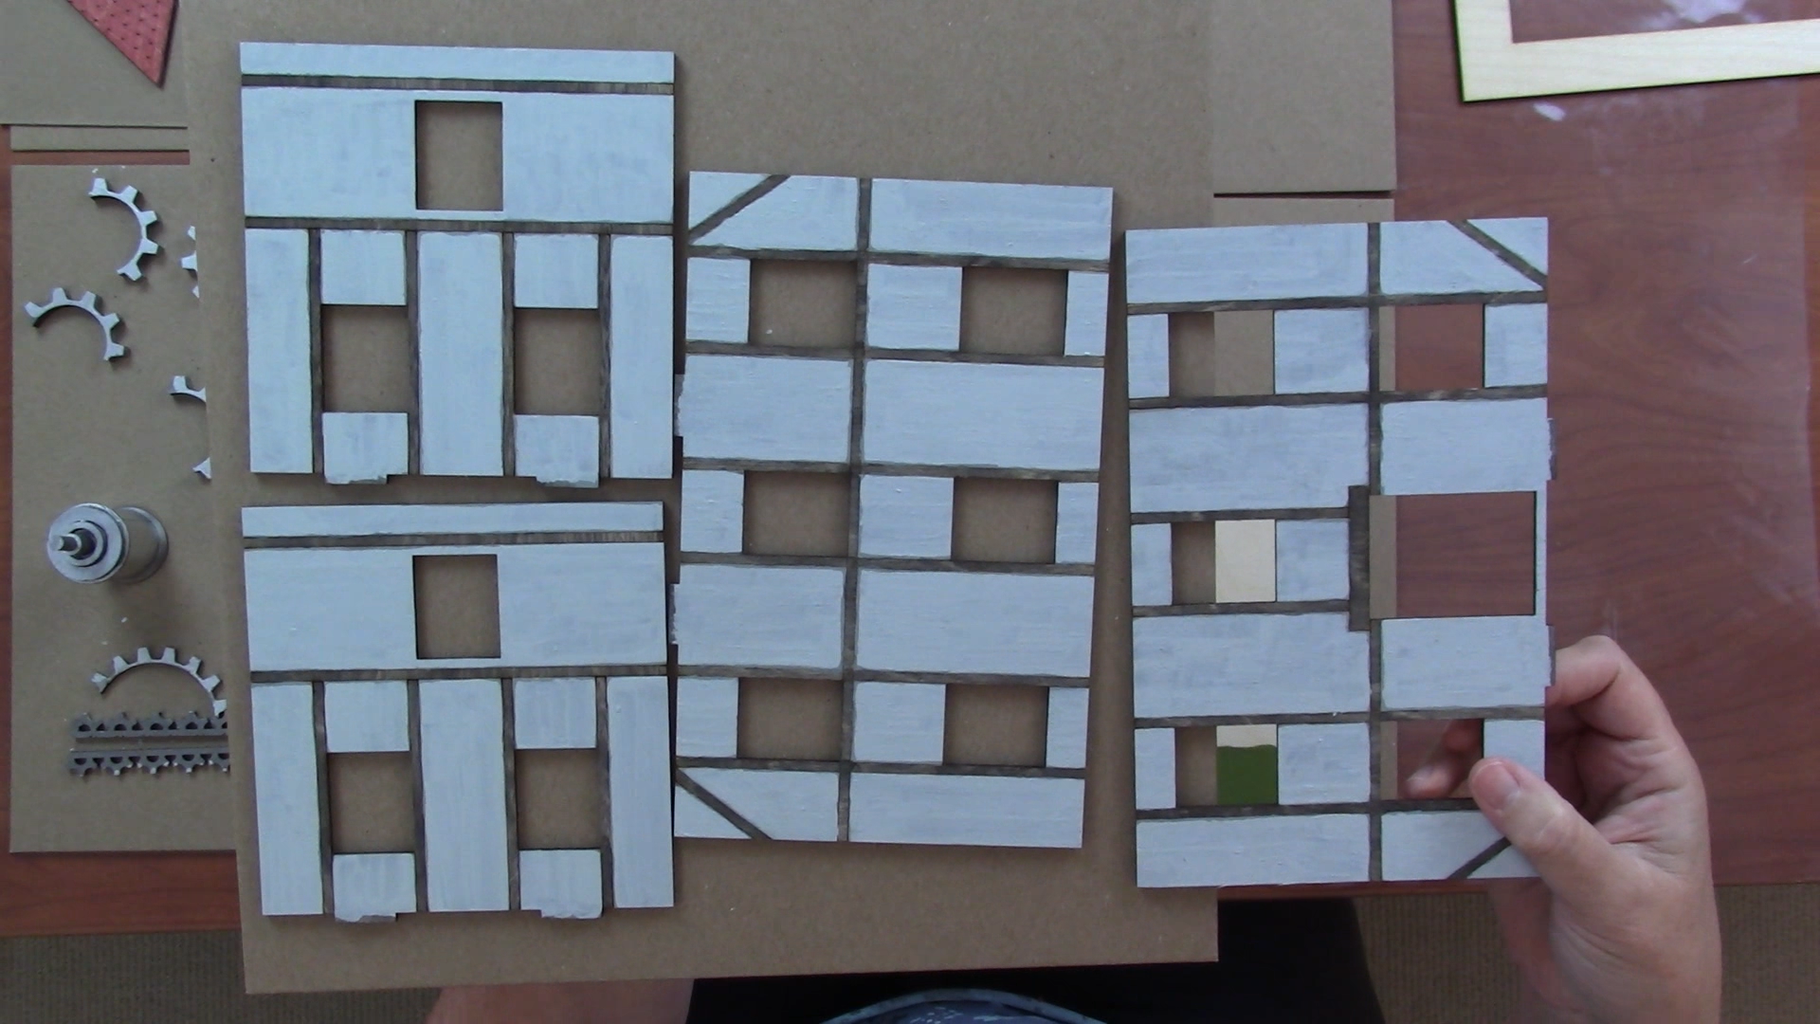 Laser Cut and Paint the Components